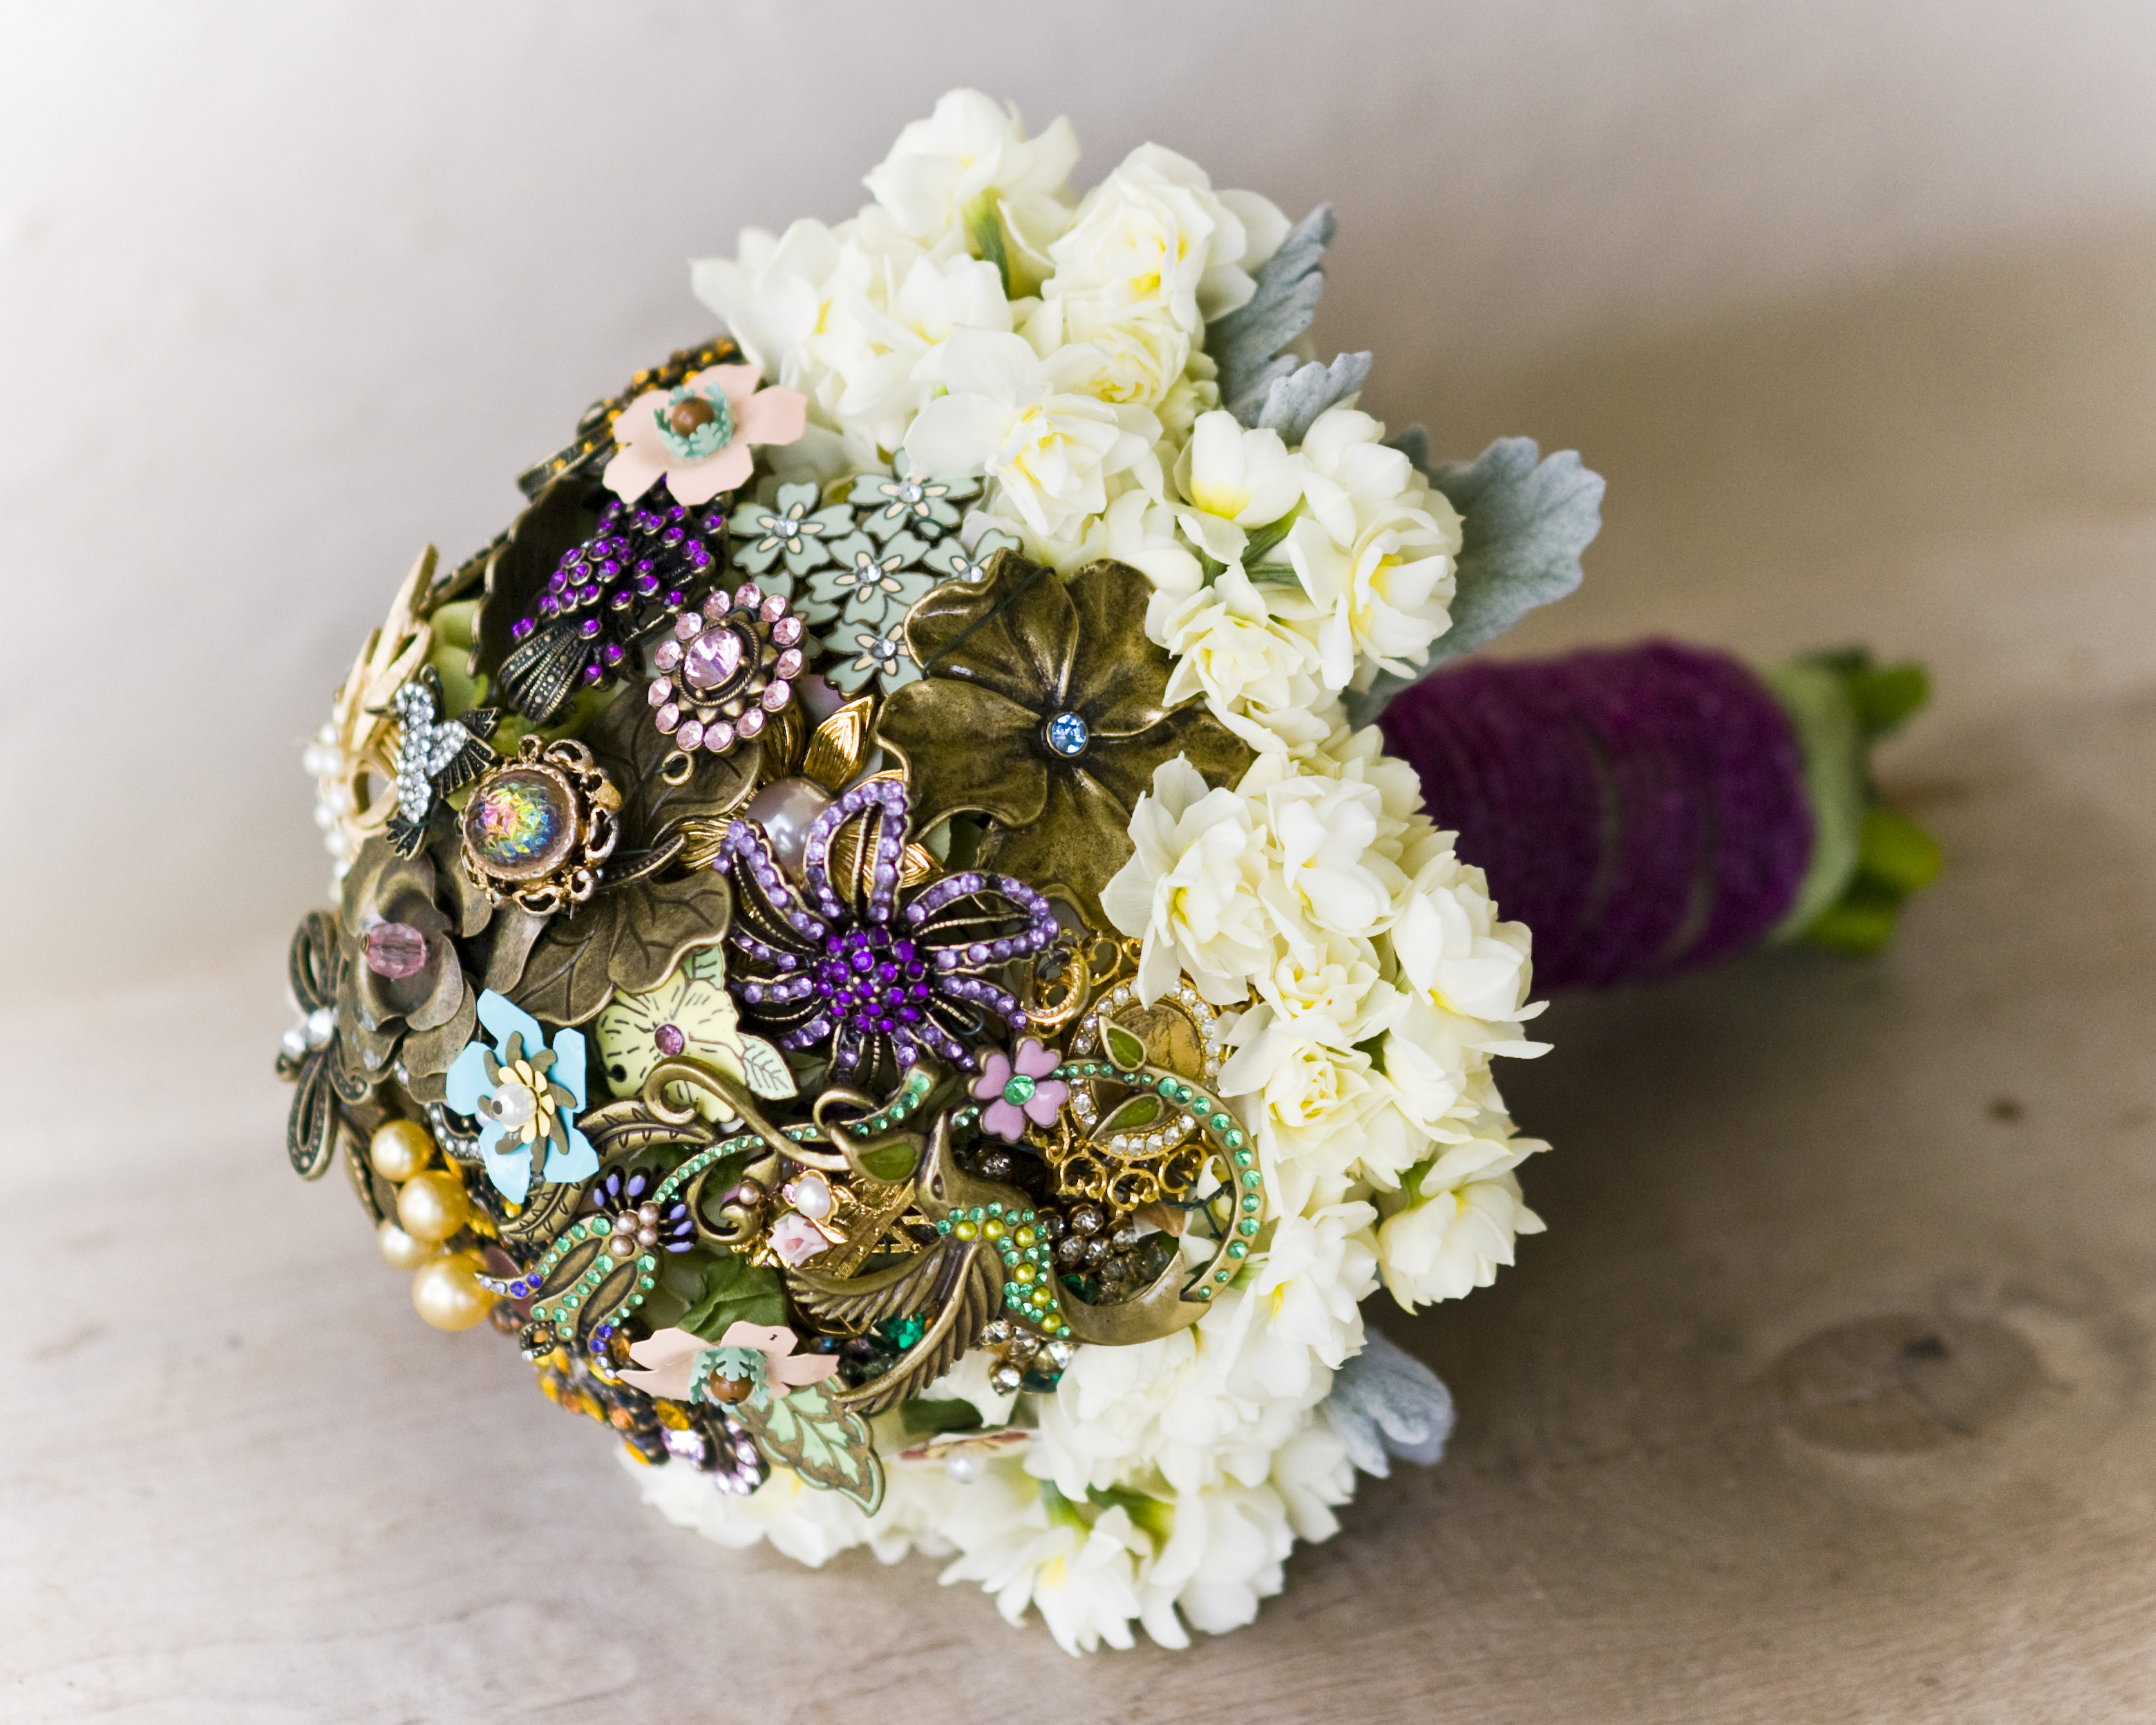 541f9814f5feb623699d9a58_Bridal-Brooch-Bouquet-7-flourishdesigns.jpg